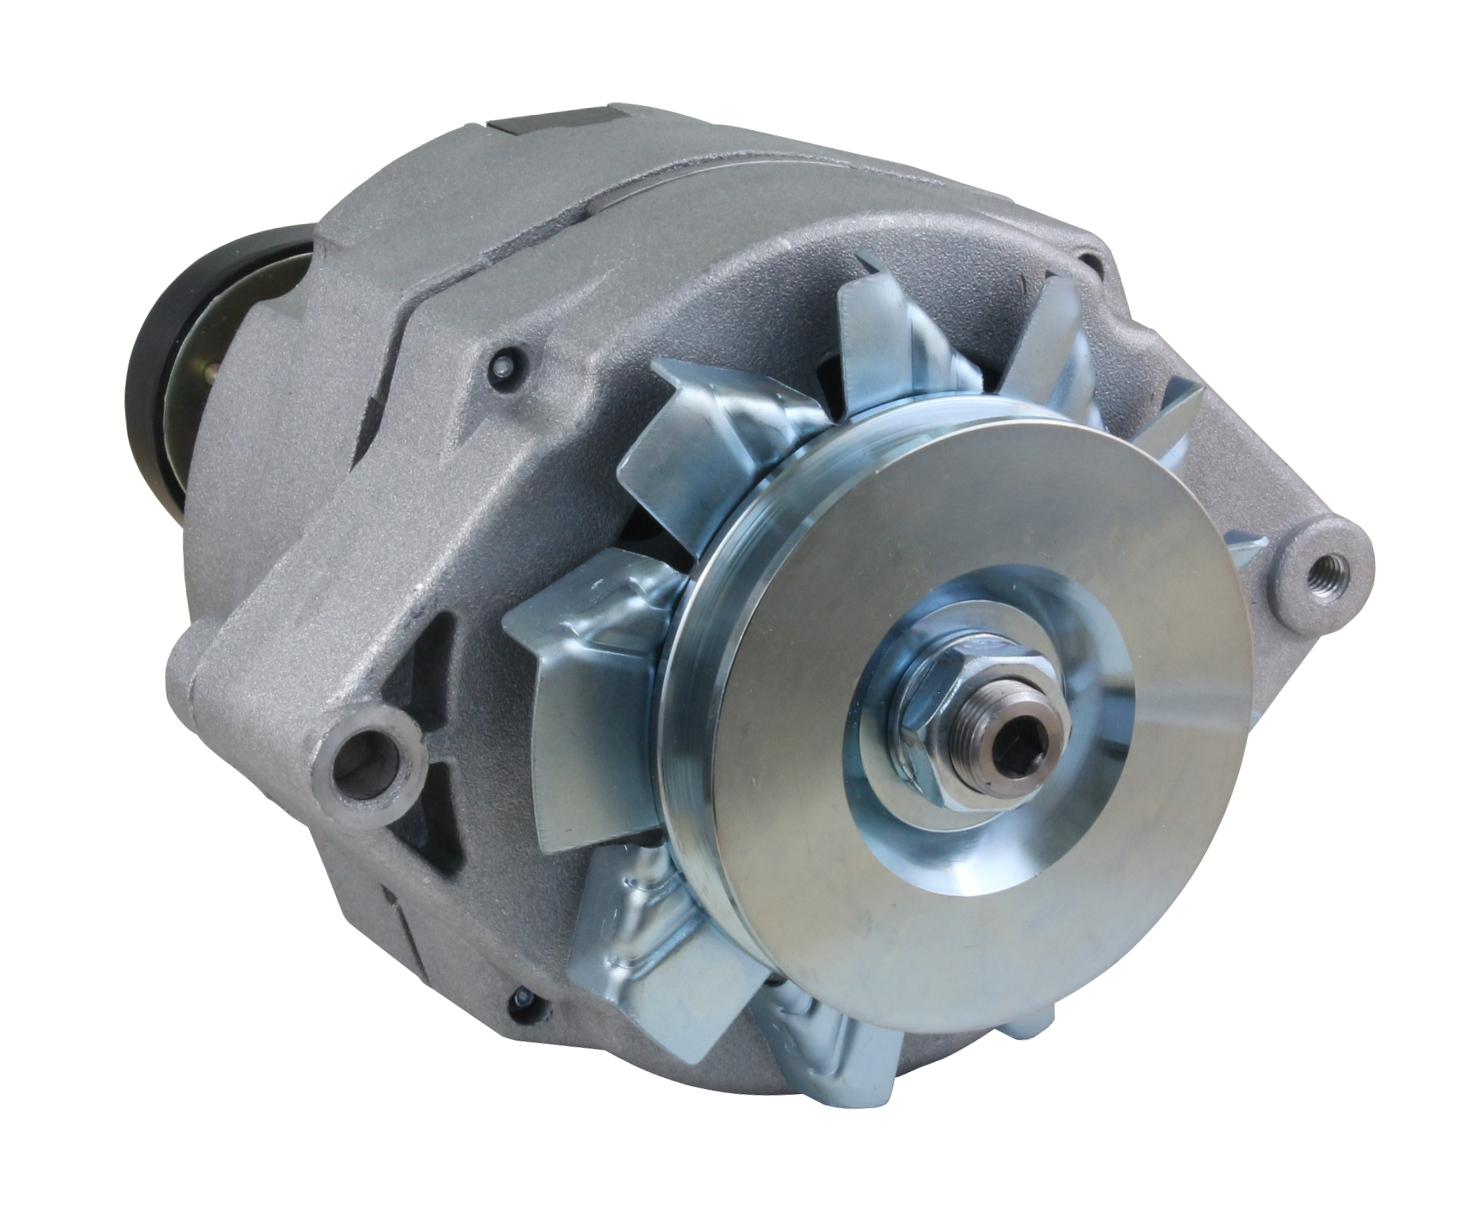 New Alternator Fit Massey Ferguson Tractor Mf